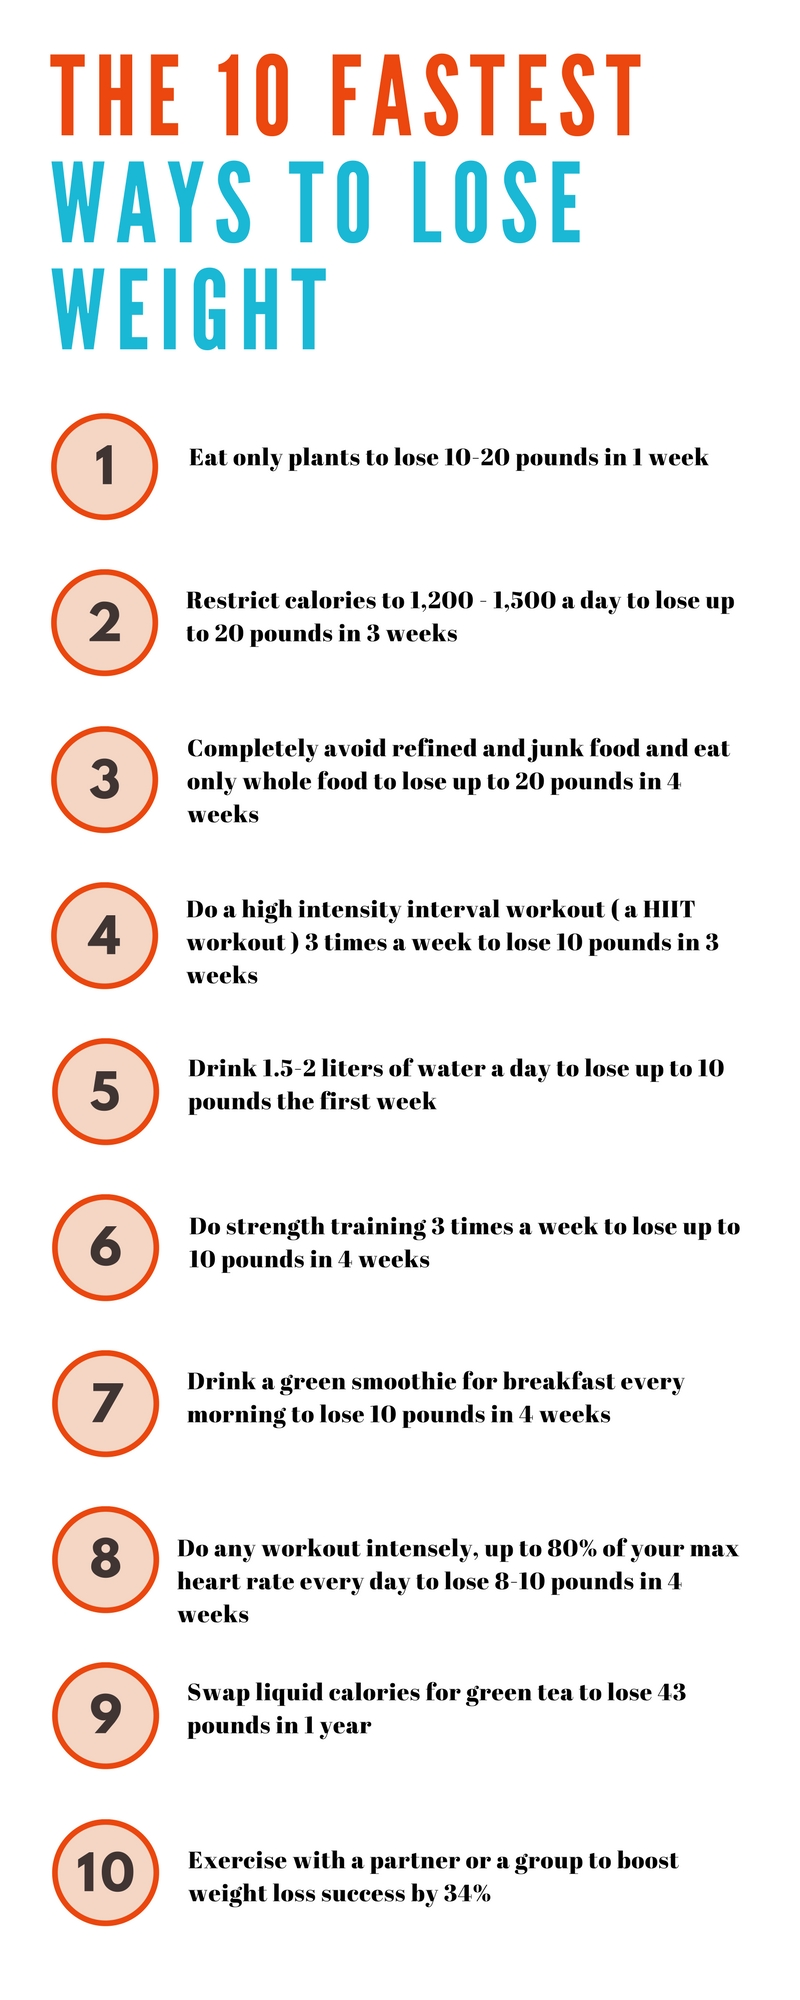 The 9 fastest ways to lose weight lose up to 20 pounds in 1 week ccuart Image collections